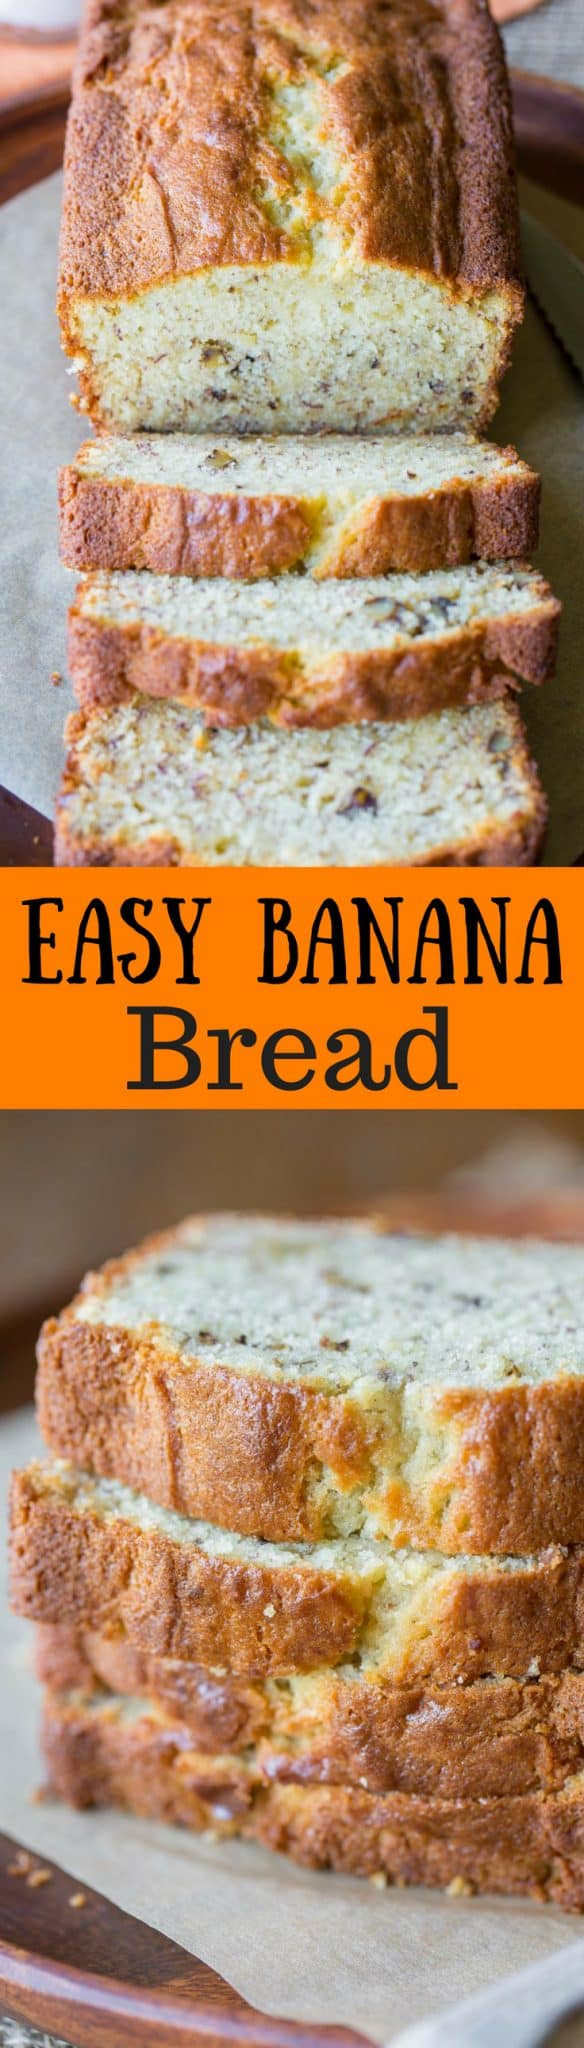 Easy Banana Bread Recipe - Saving Room for Dessert